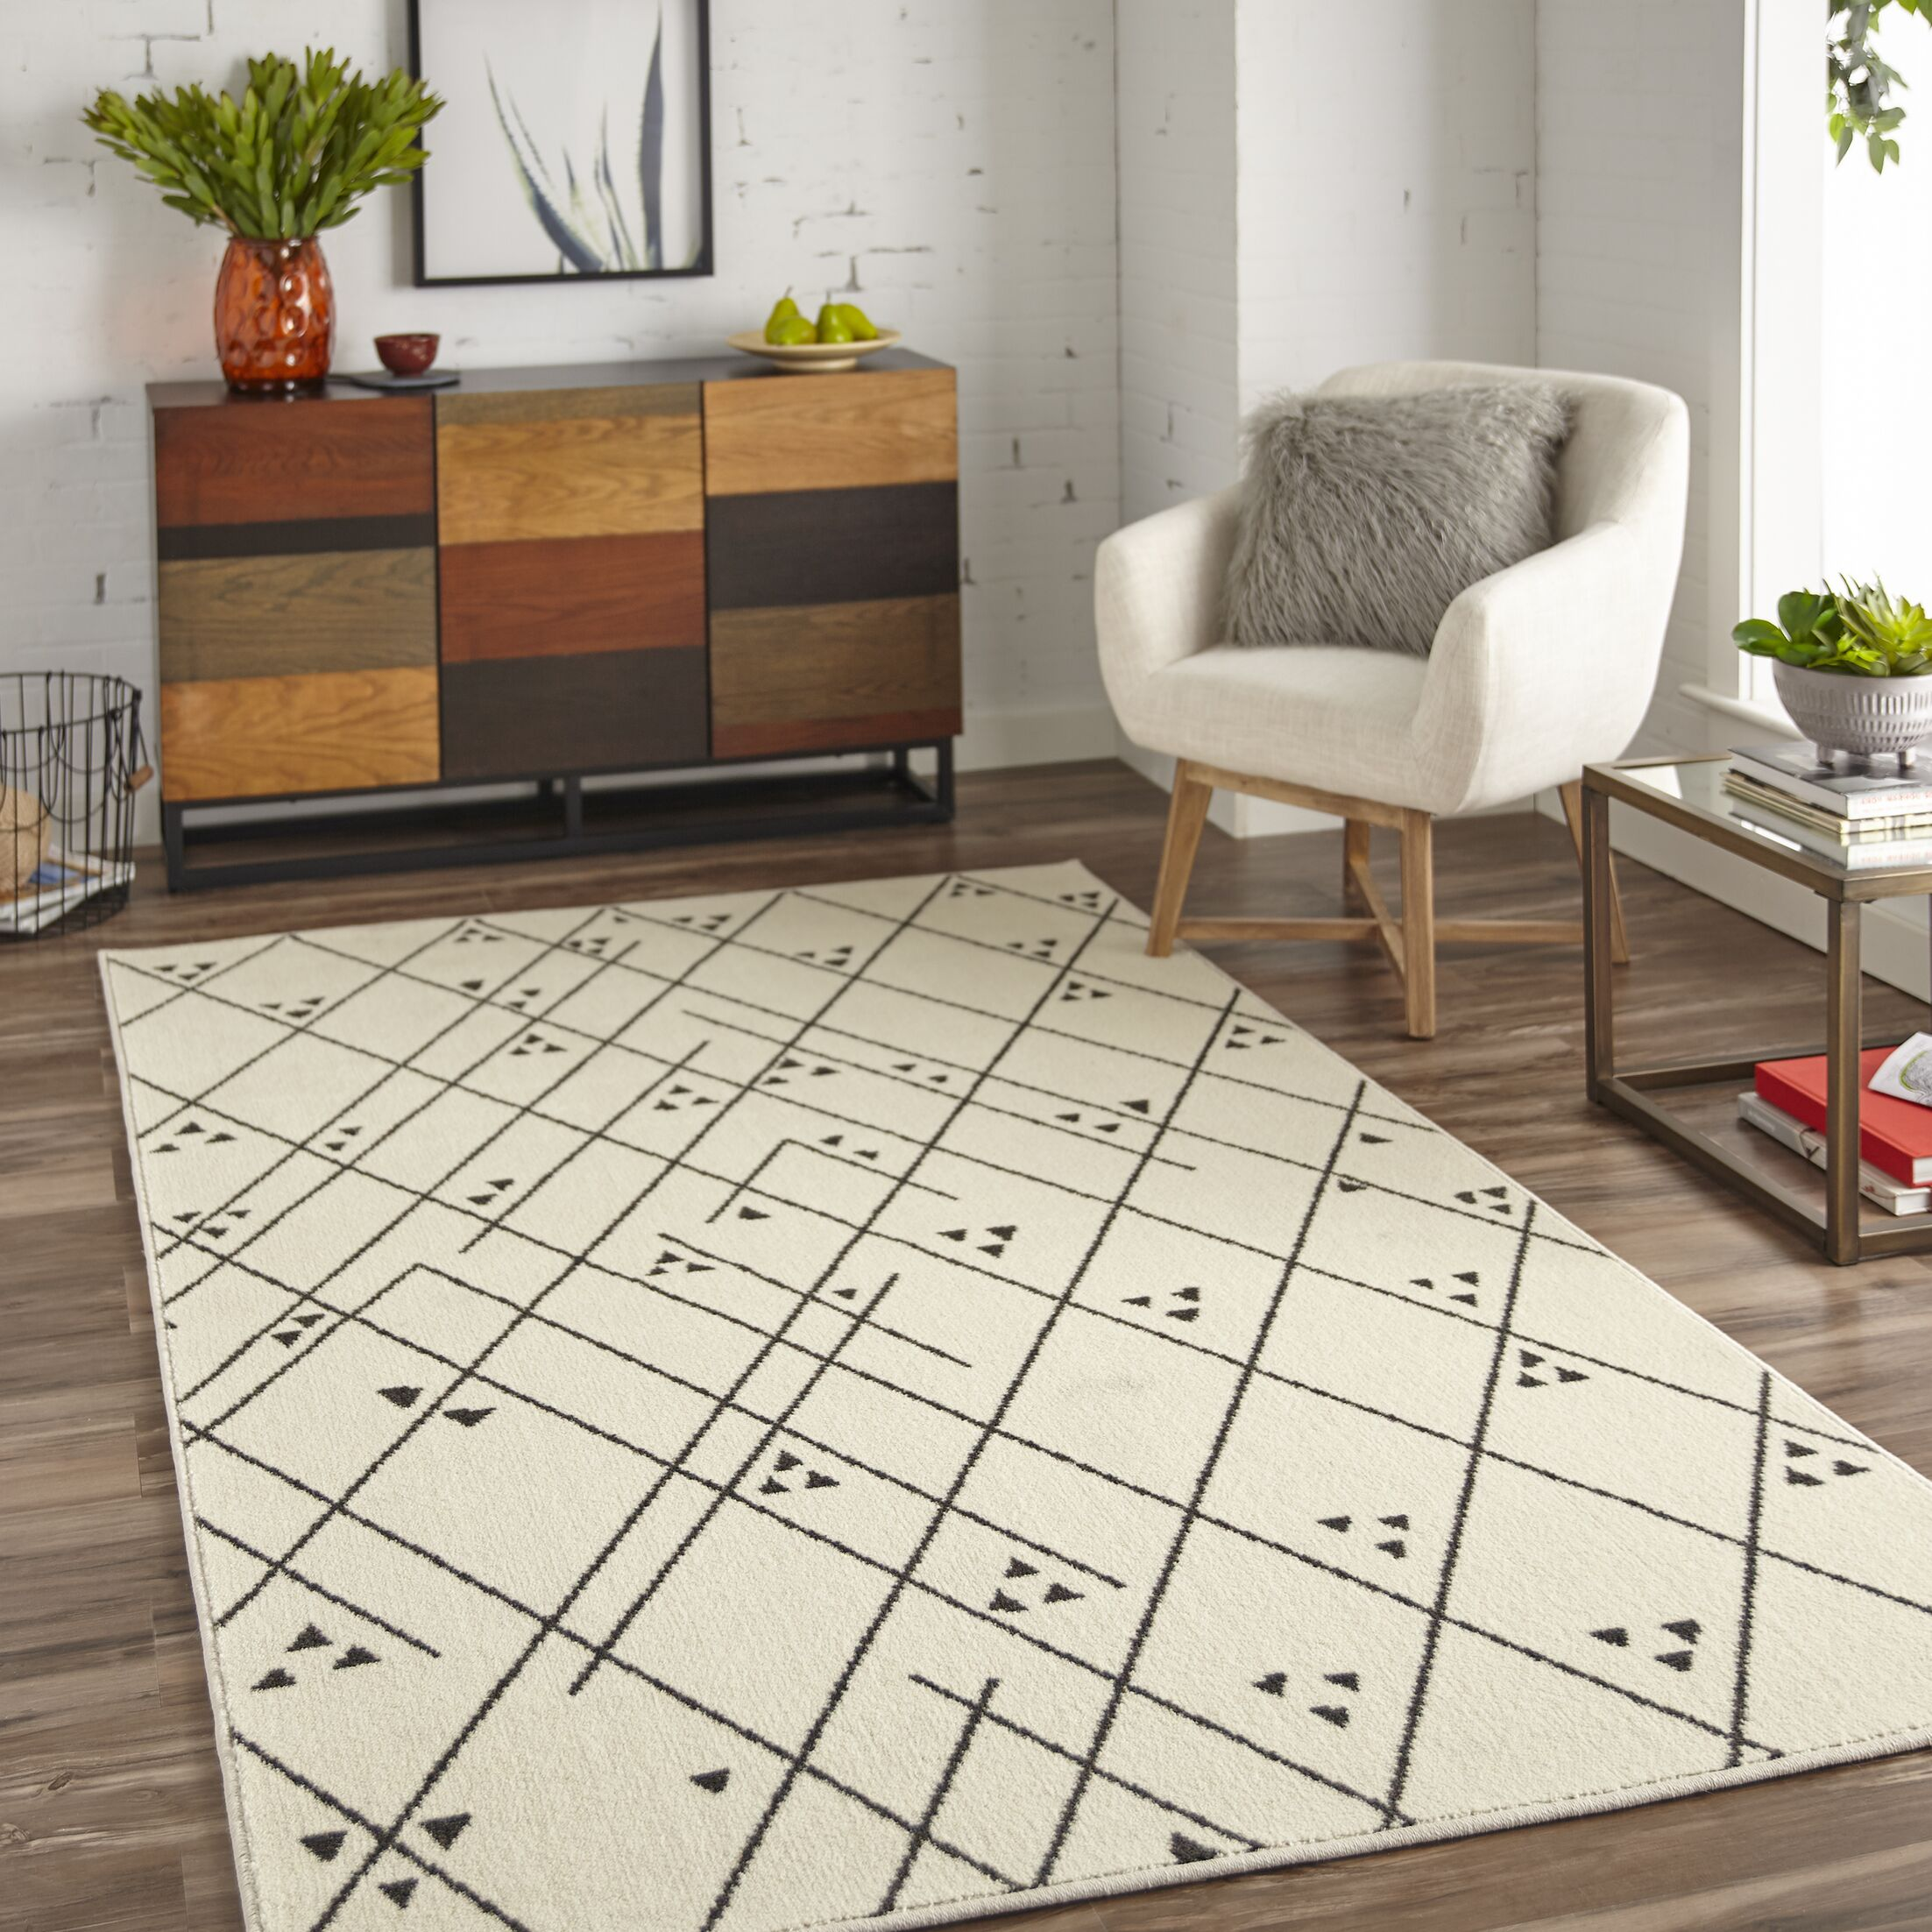 Engler Tribal Lines Beige Area Rug Rug Size: Rectangle 5' x 8'